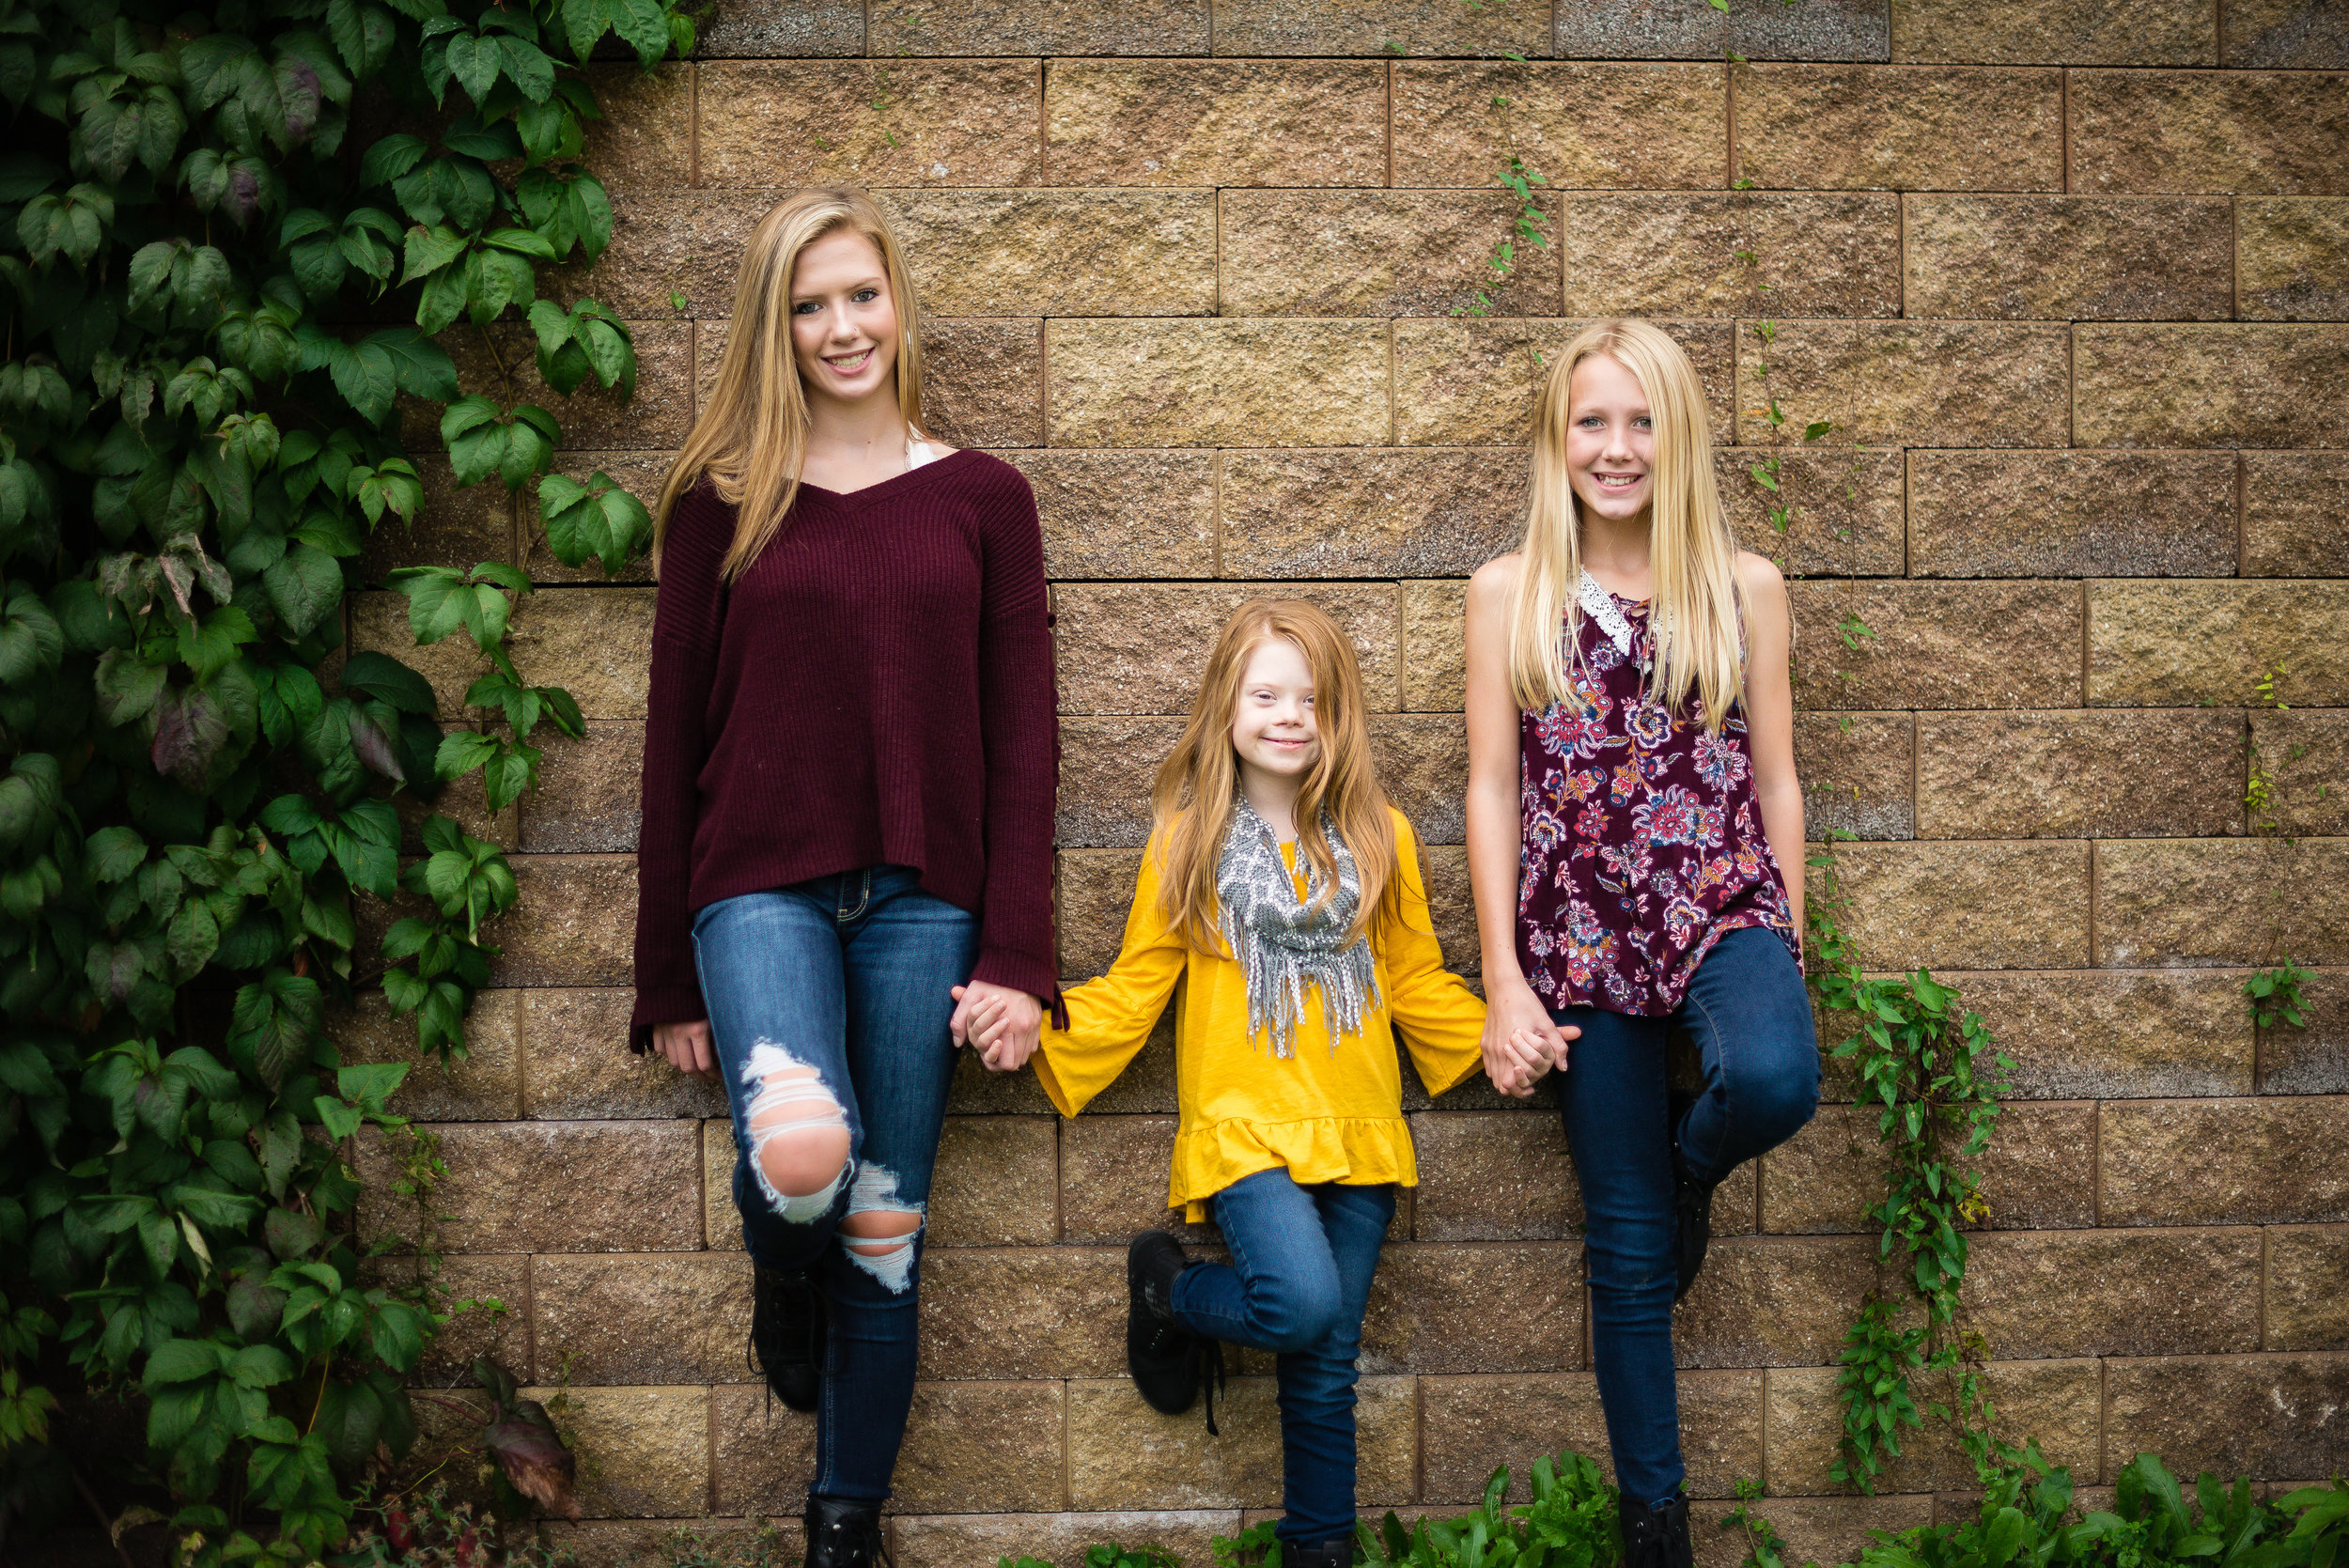 brittany-humes-photography-family-session.jpg